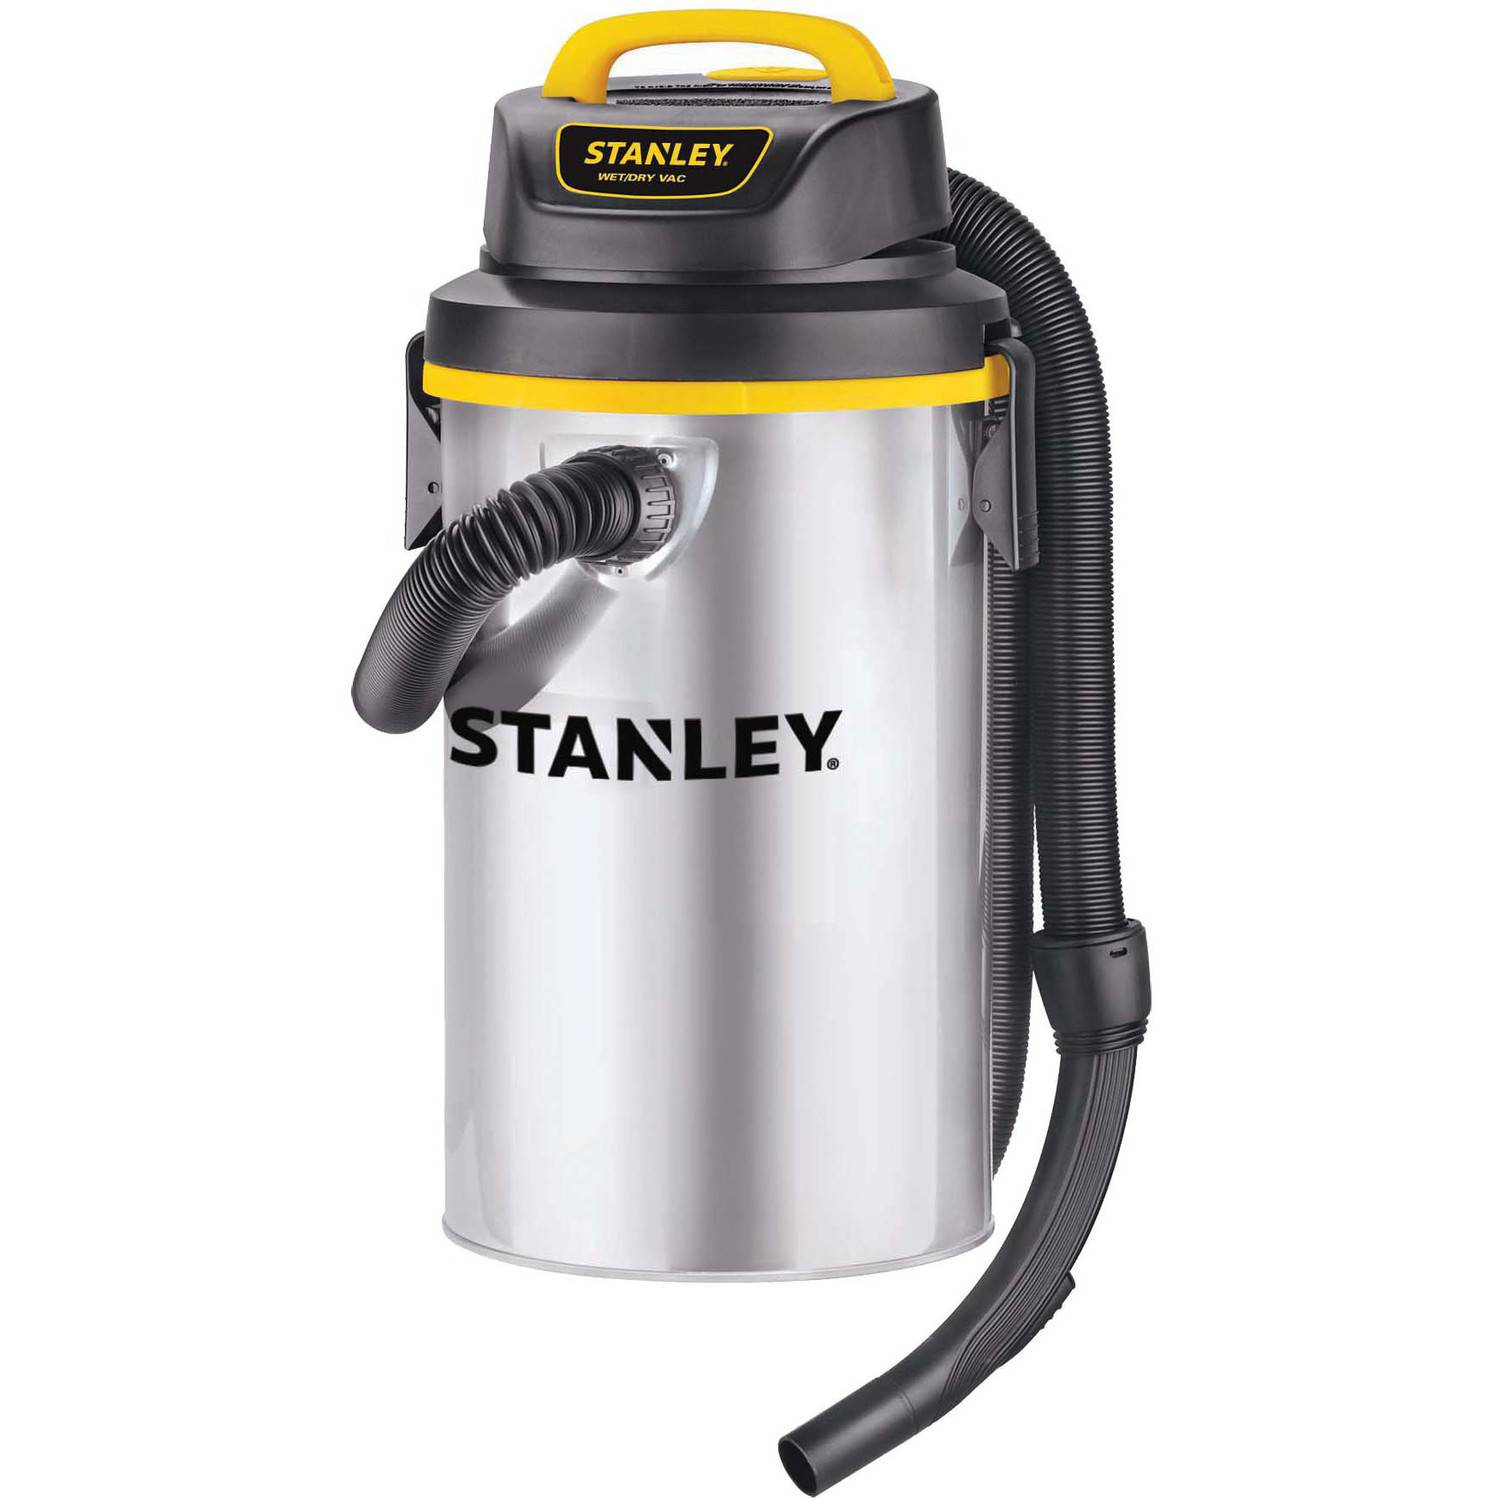 Stanley 4.5-gallon, 4.5-peak horse power, Stainless Steel Hangup wet dry vacuum